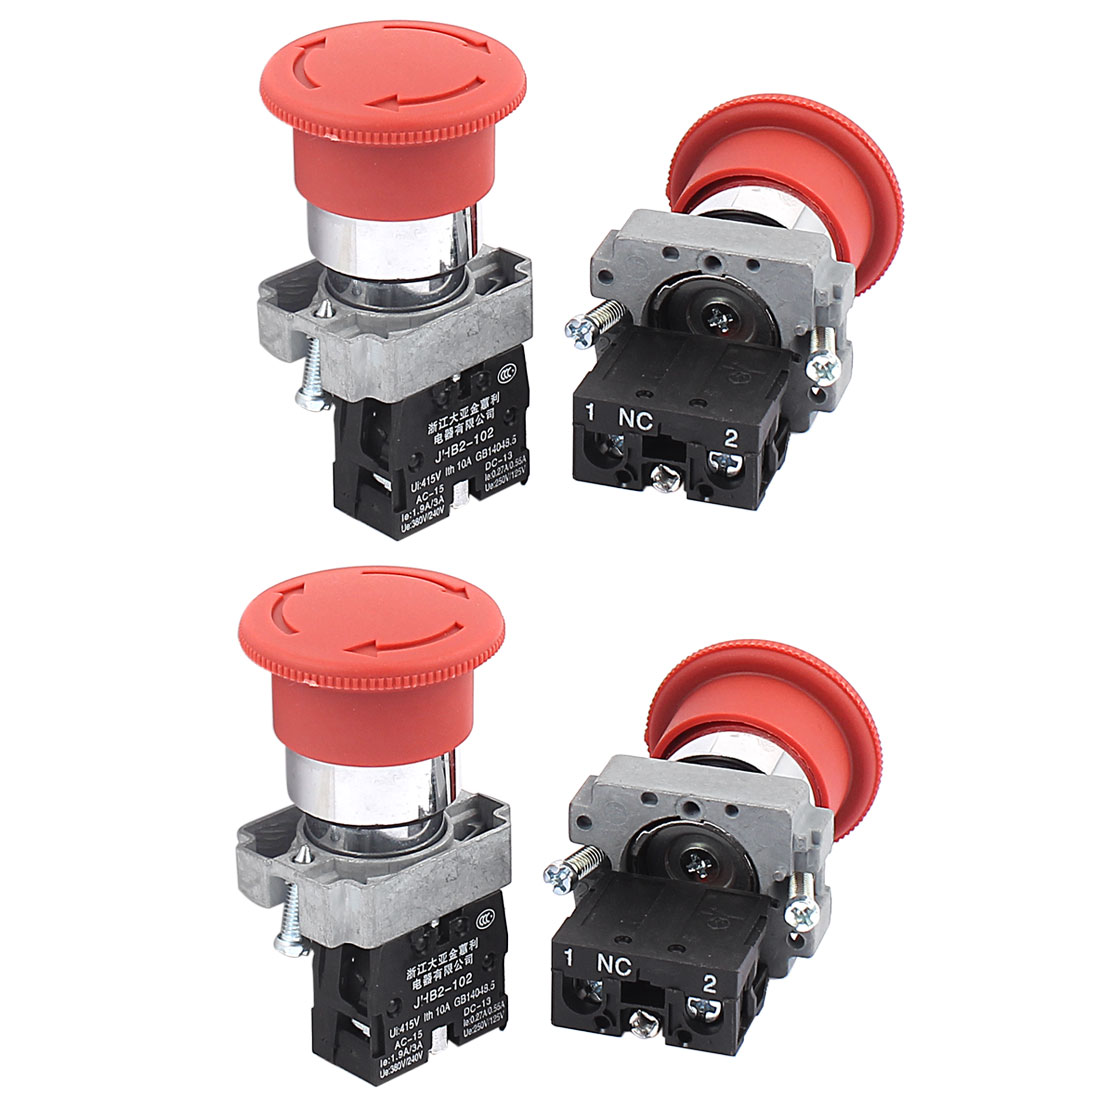 AC 415V 10A Momentary NC Push Button Rotary Switch Contact Block 4PCS